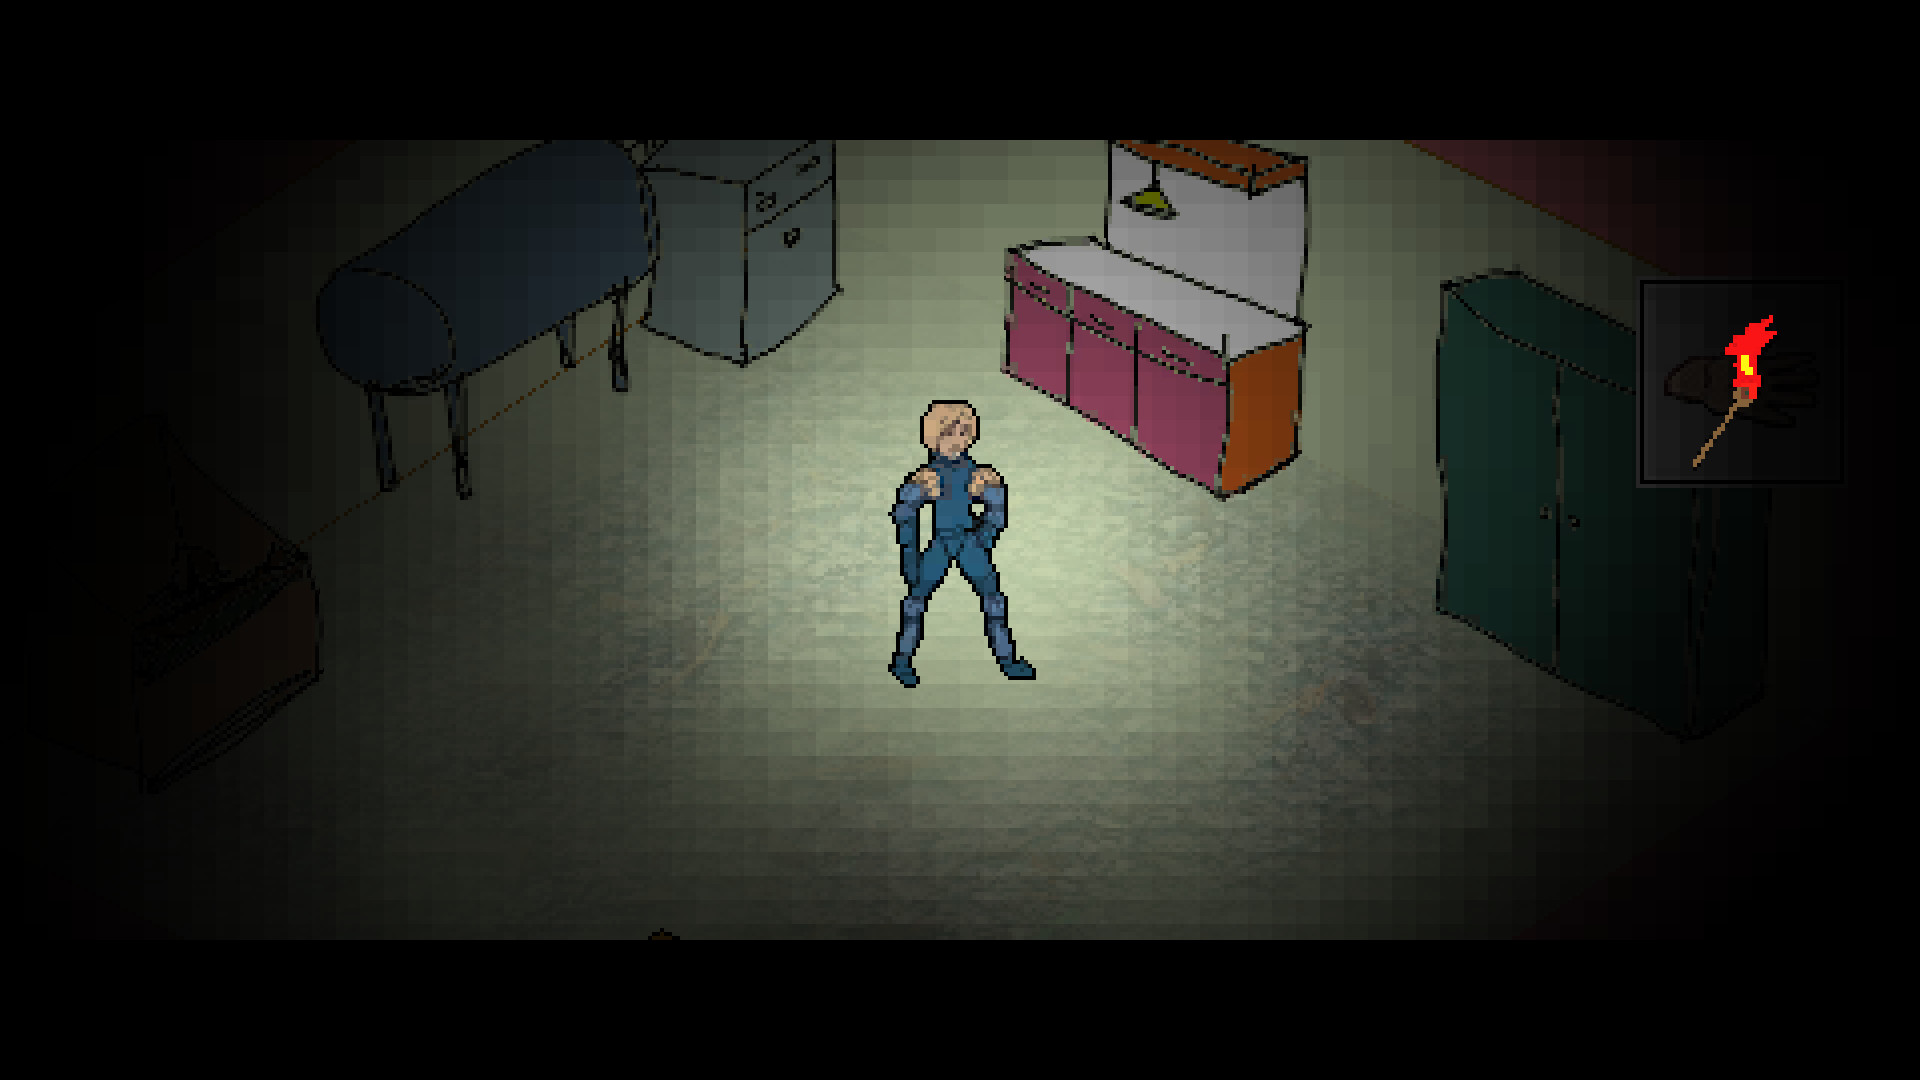 Cpt.Balloney - painful days at home screenshot